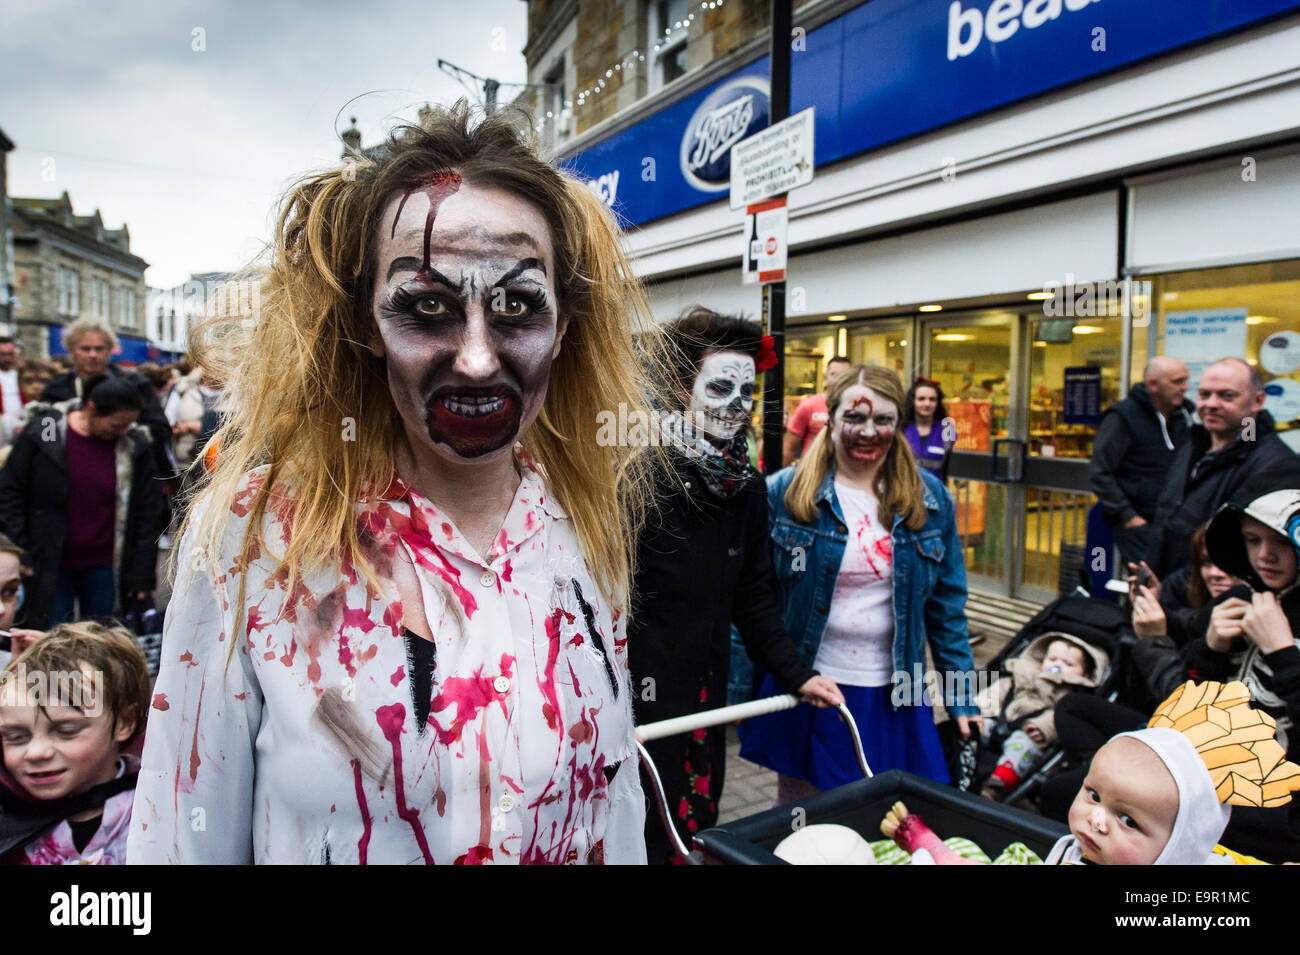 Newquay, Cornwall. 31st October 204.  Zombies parade along Newquay High Street. Credit:  Gordon Scammell/Alamy Live - Stock Image